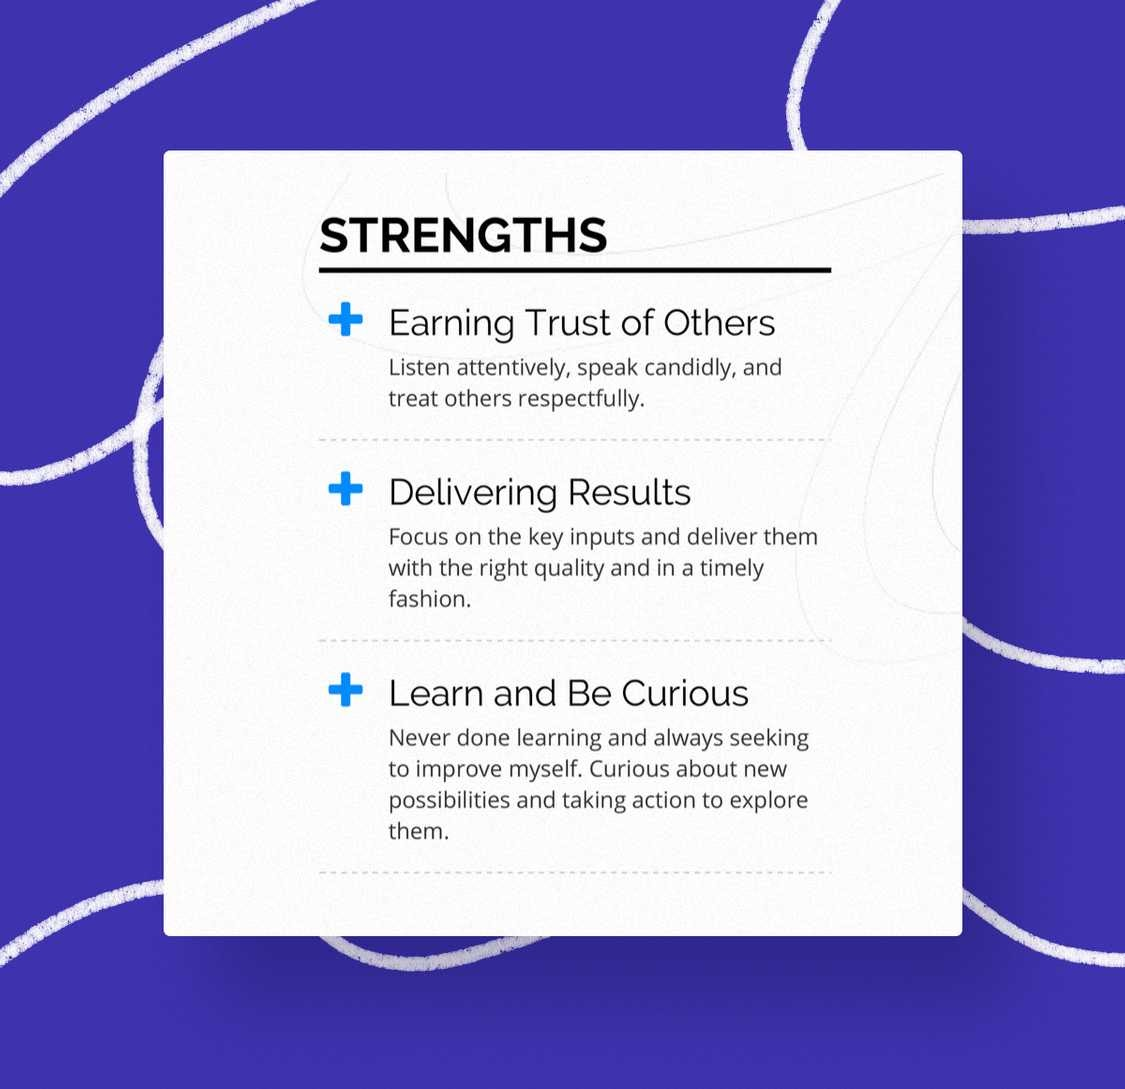 resume highlights accomplishments get you hired unique strengths for carillio sample Resume Unique Strengths For Resume